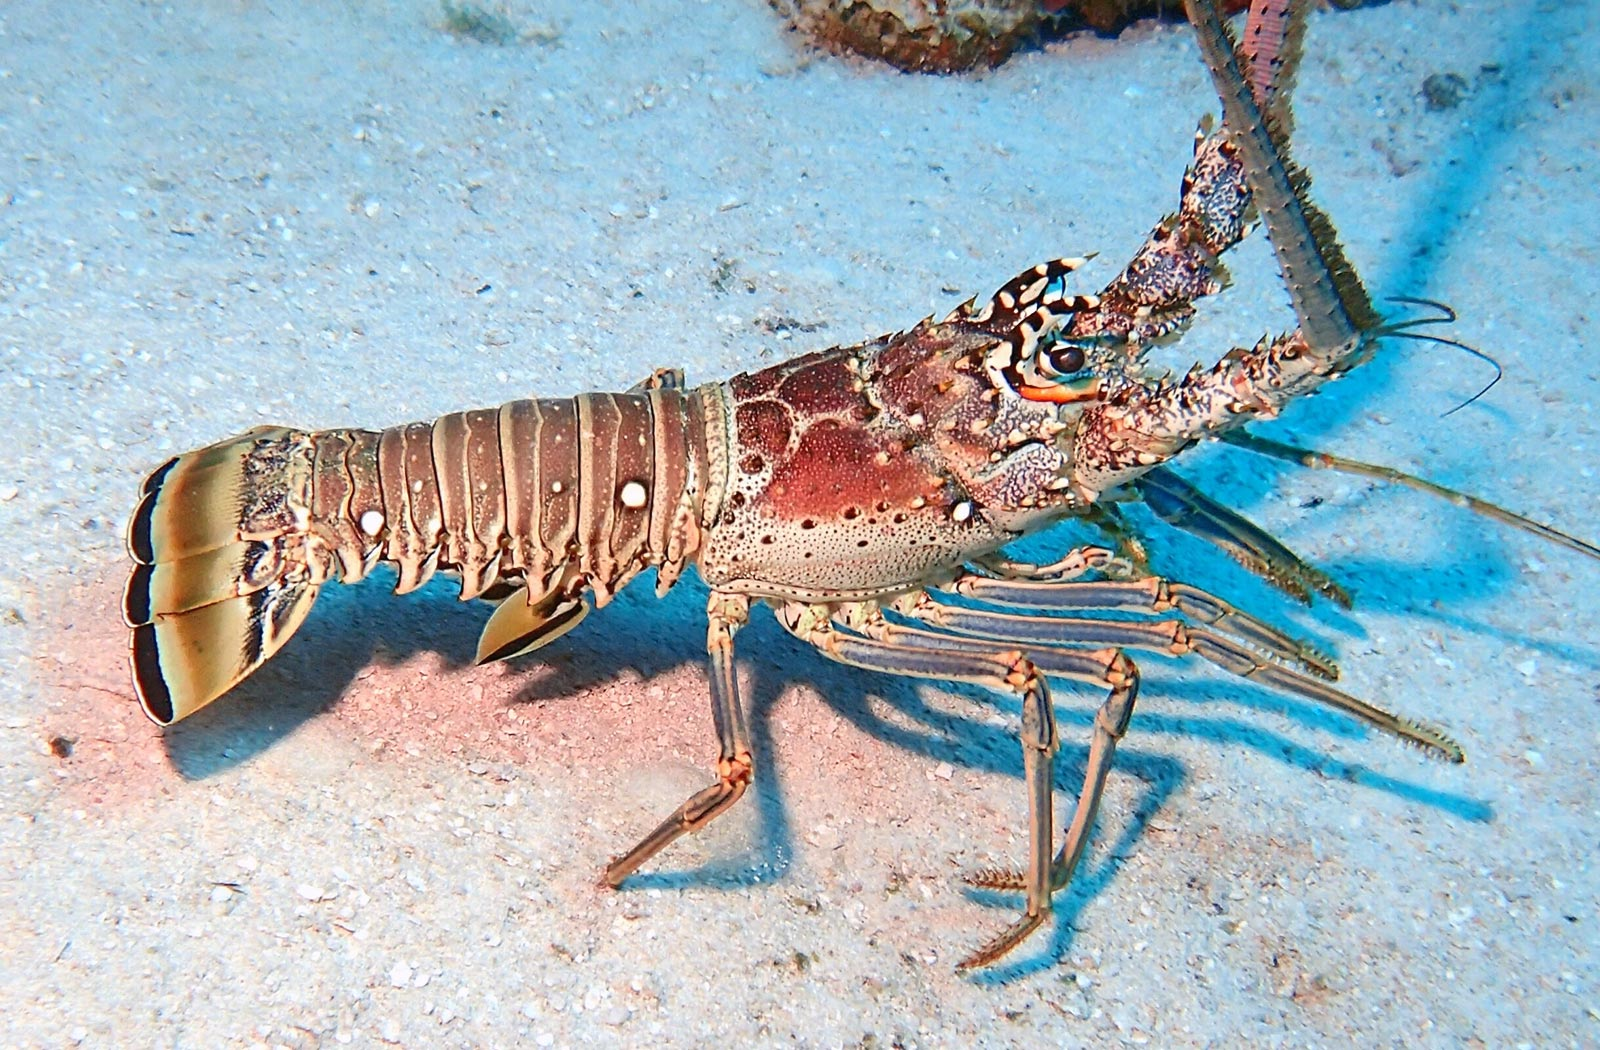 Spiny lobster crawling on sandy sea floor